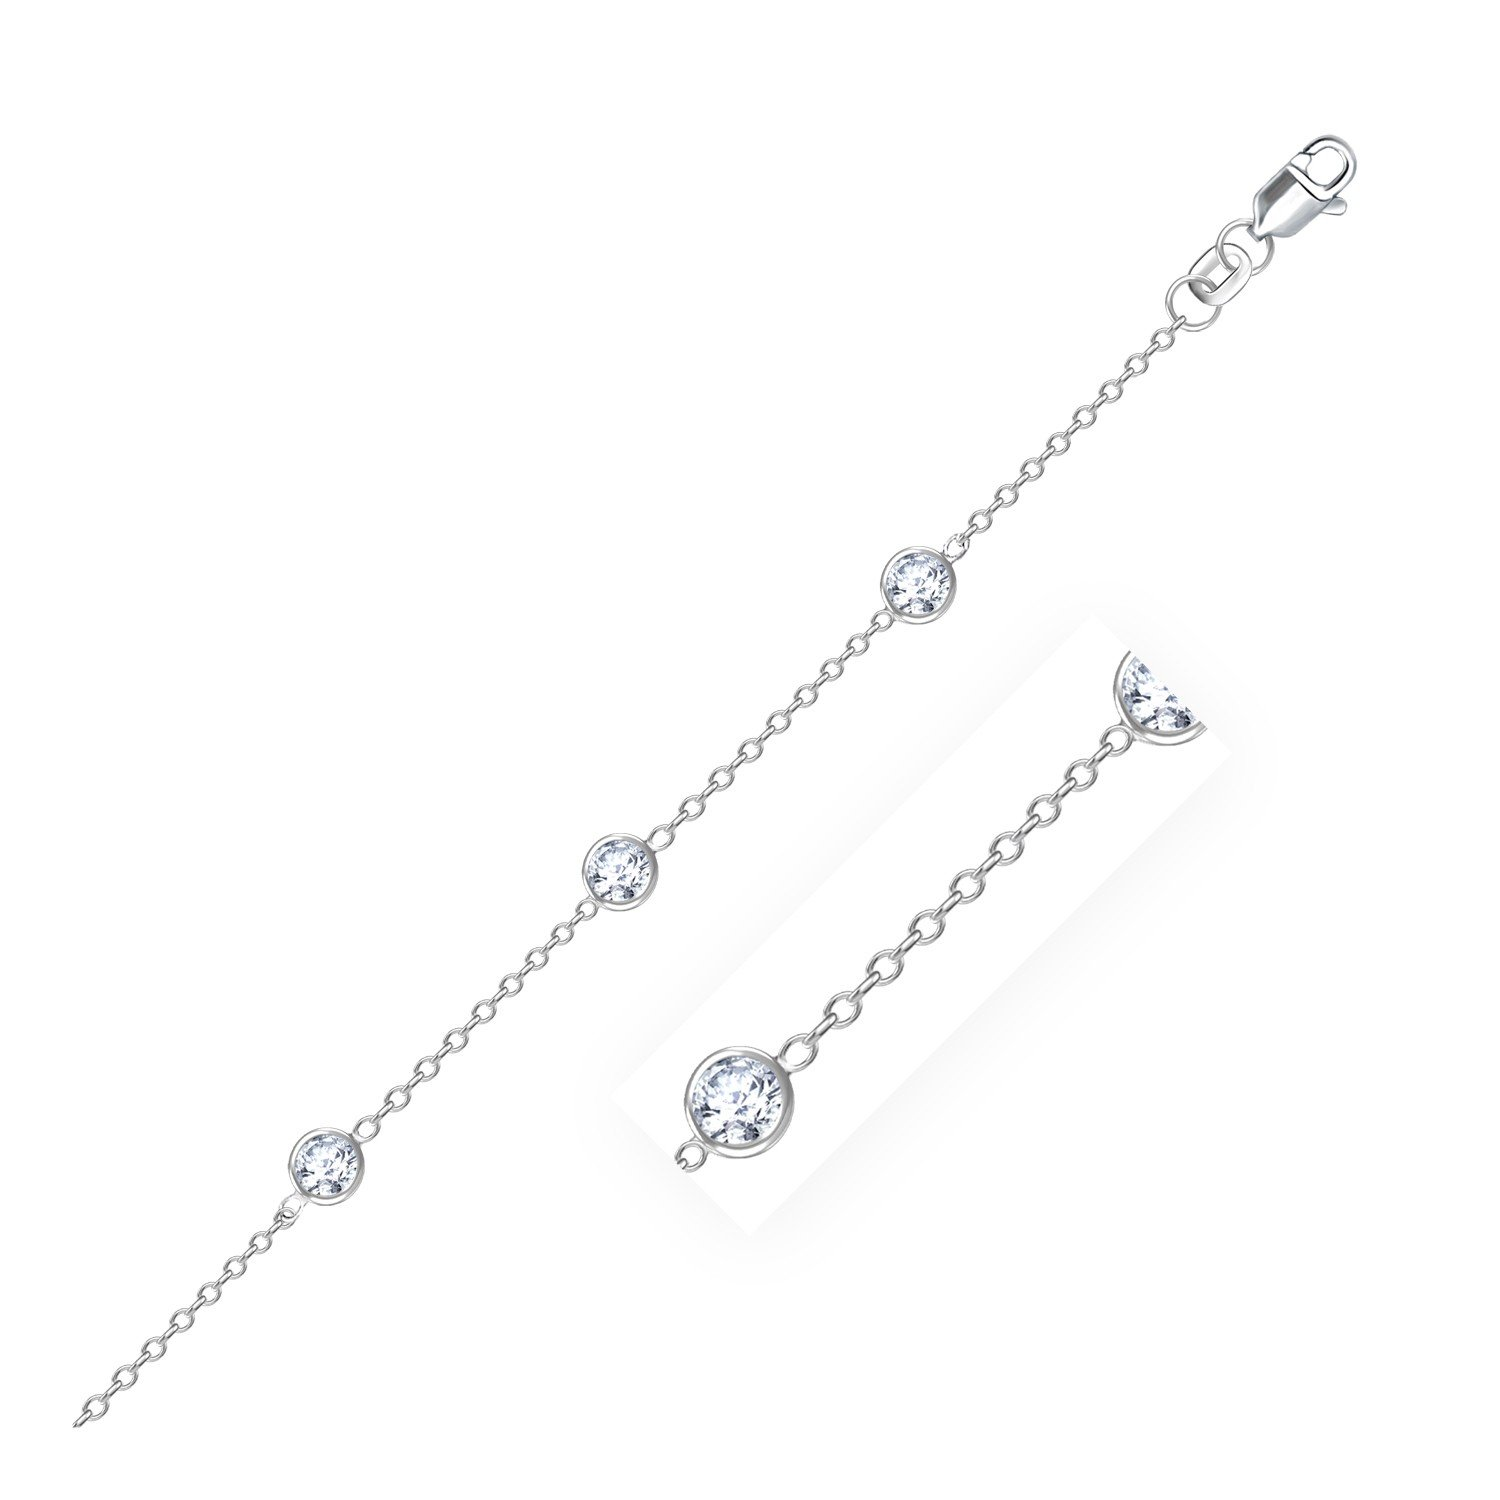 14K White Gold Anklet with Round White Cubic Zirconia